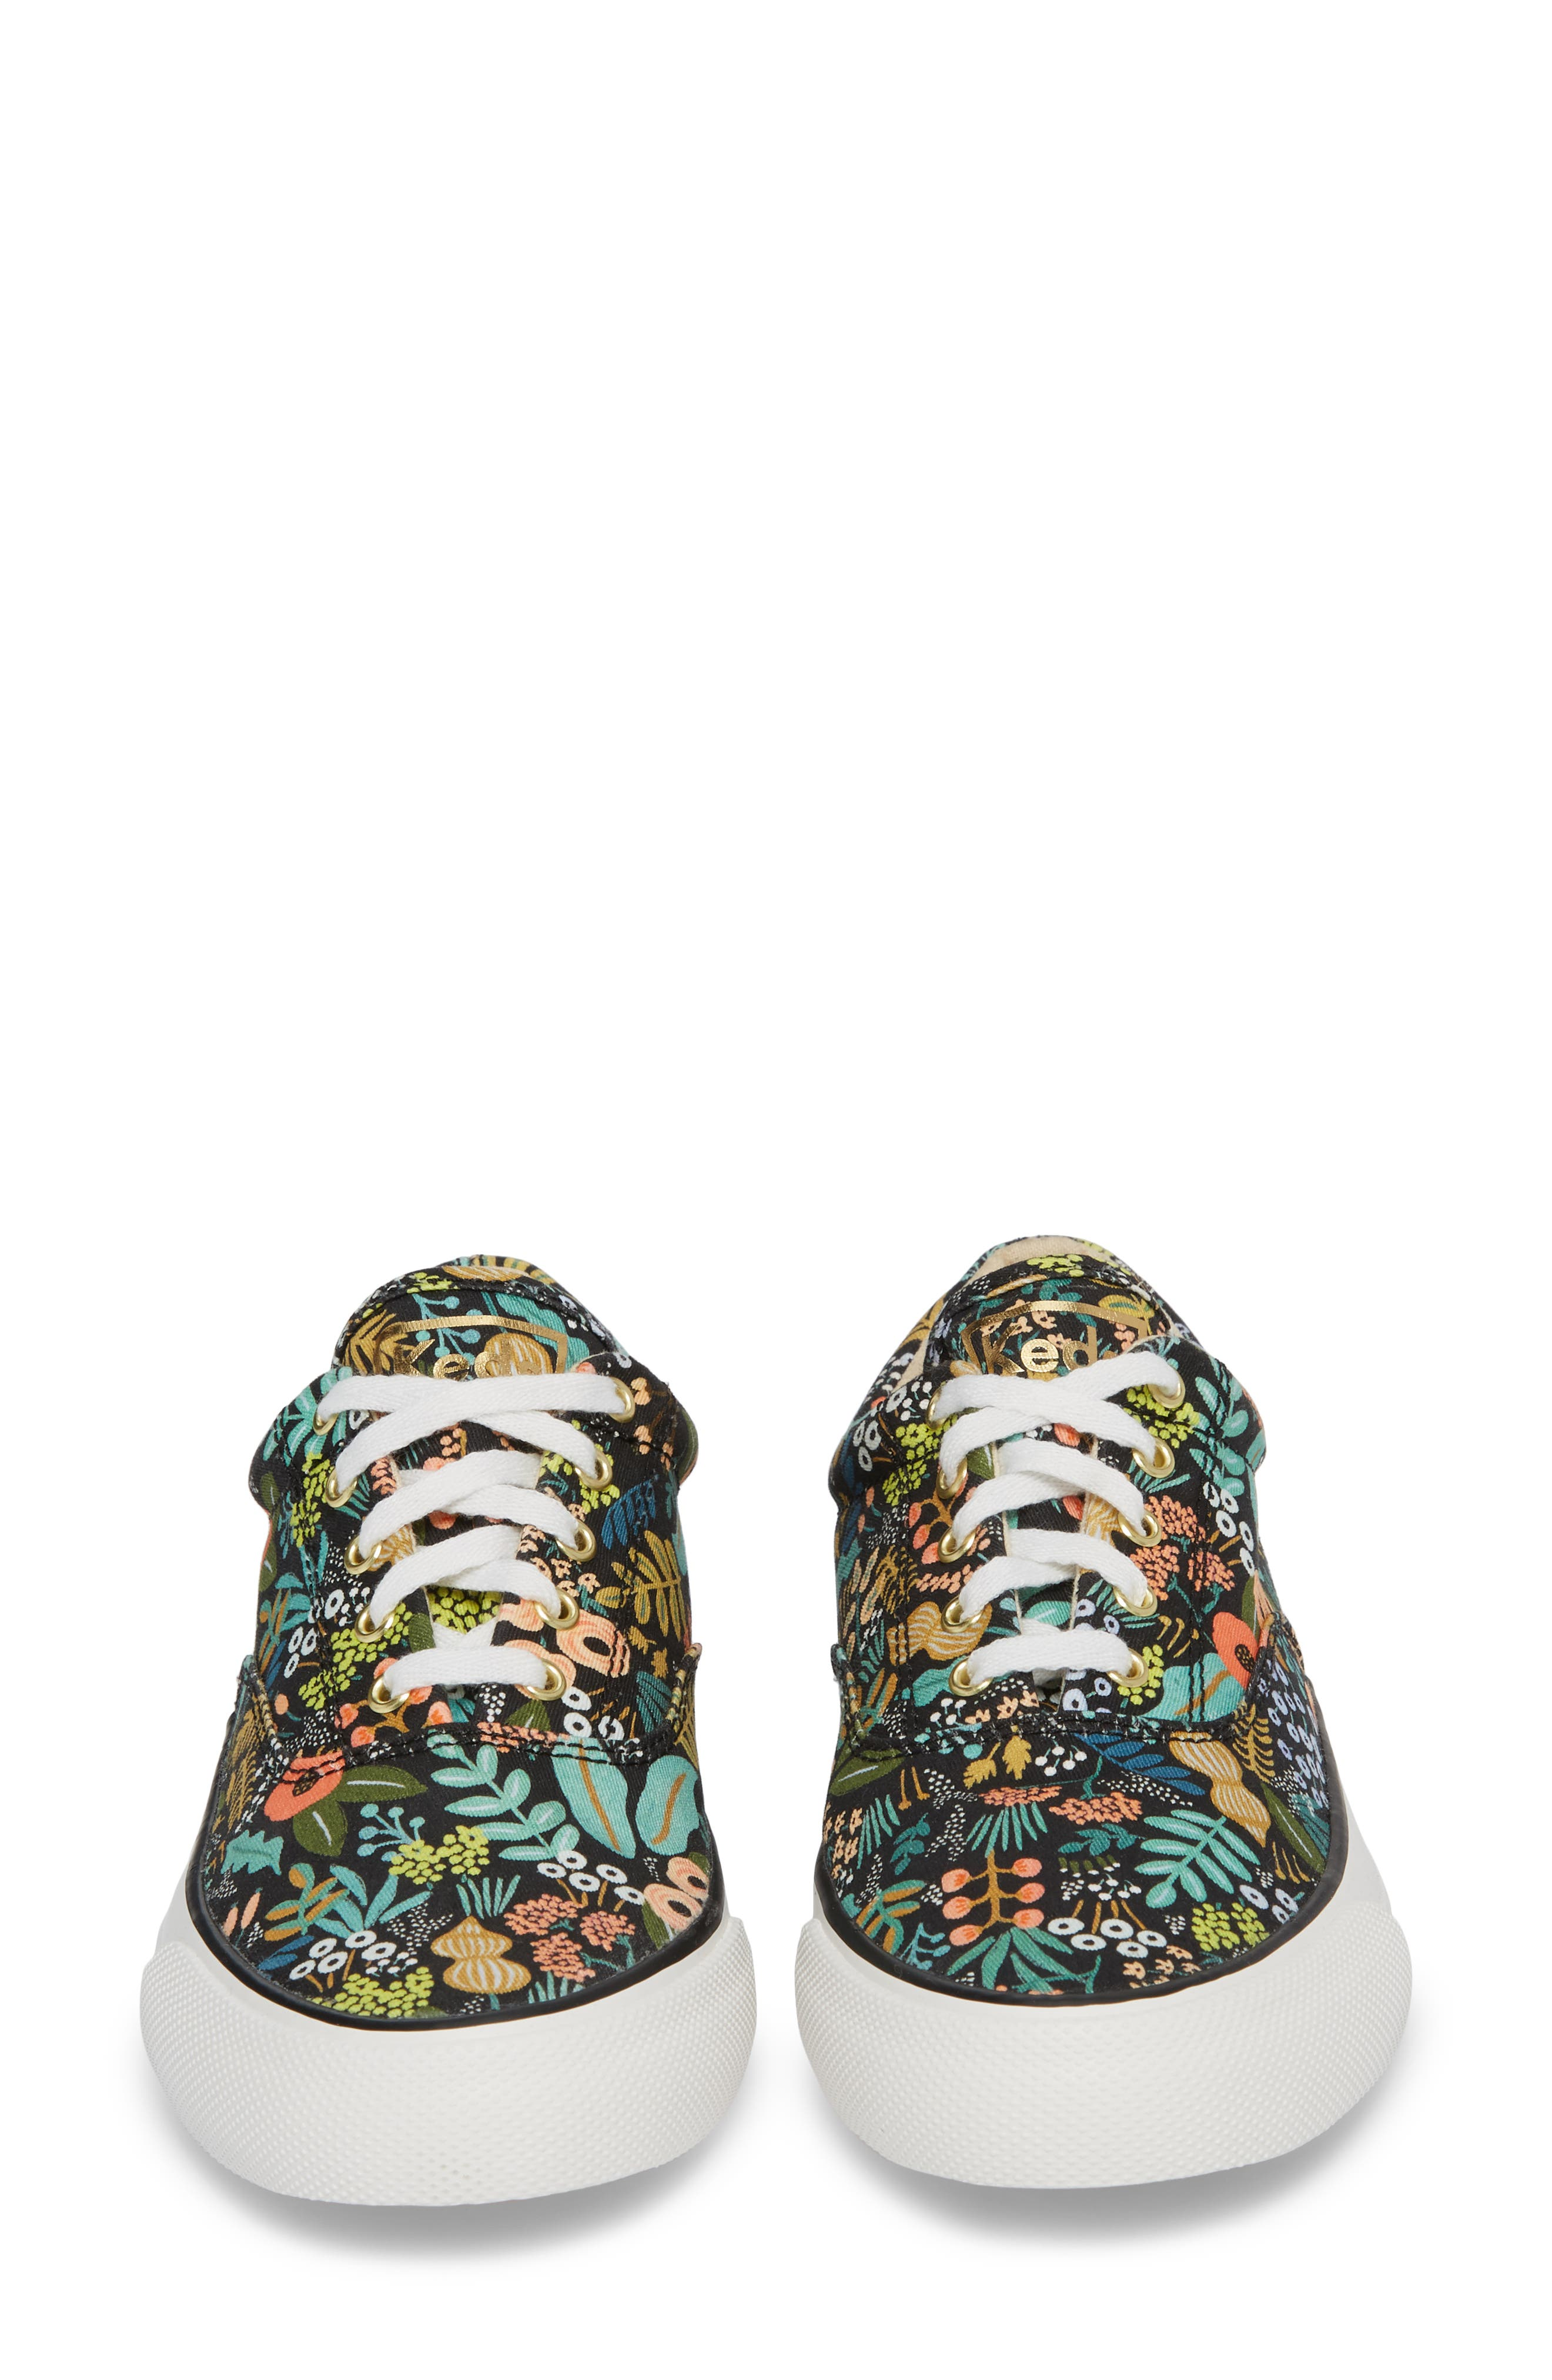 KEDS<SUP>®</SUP>, x Rifle Paper Co. Anchor Lively Floral Slip-On Sneaker, Alternate thumbnail 5, color, BLACK